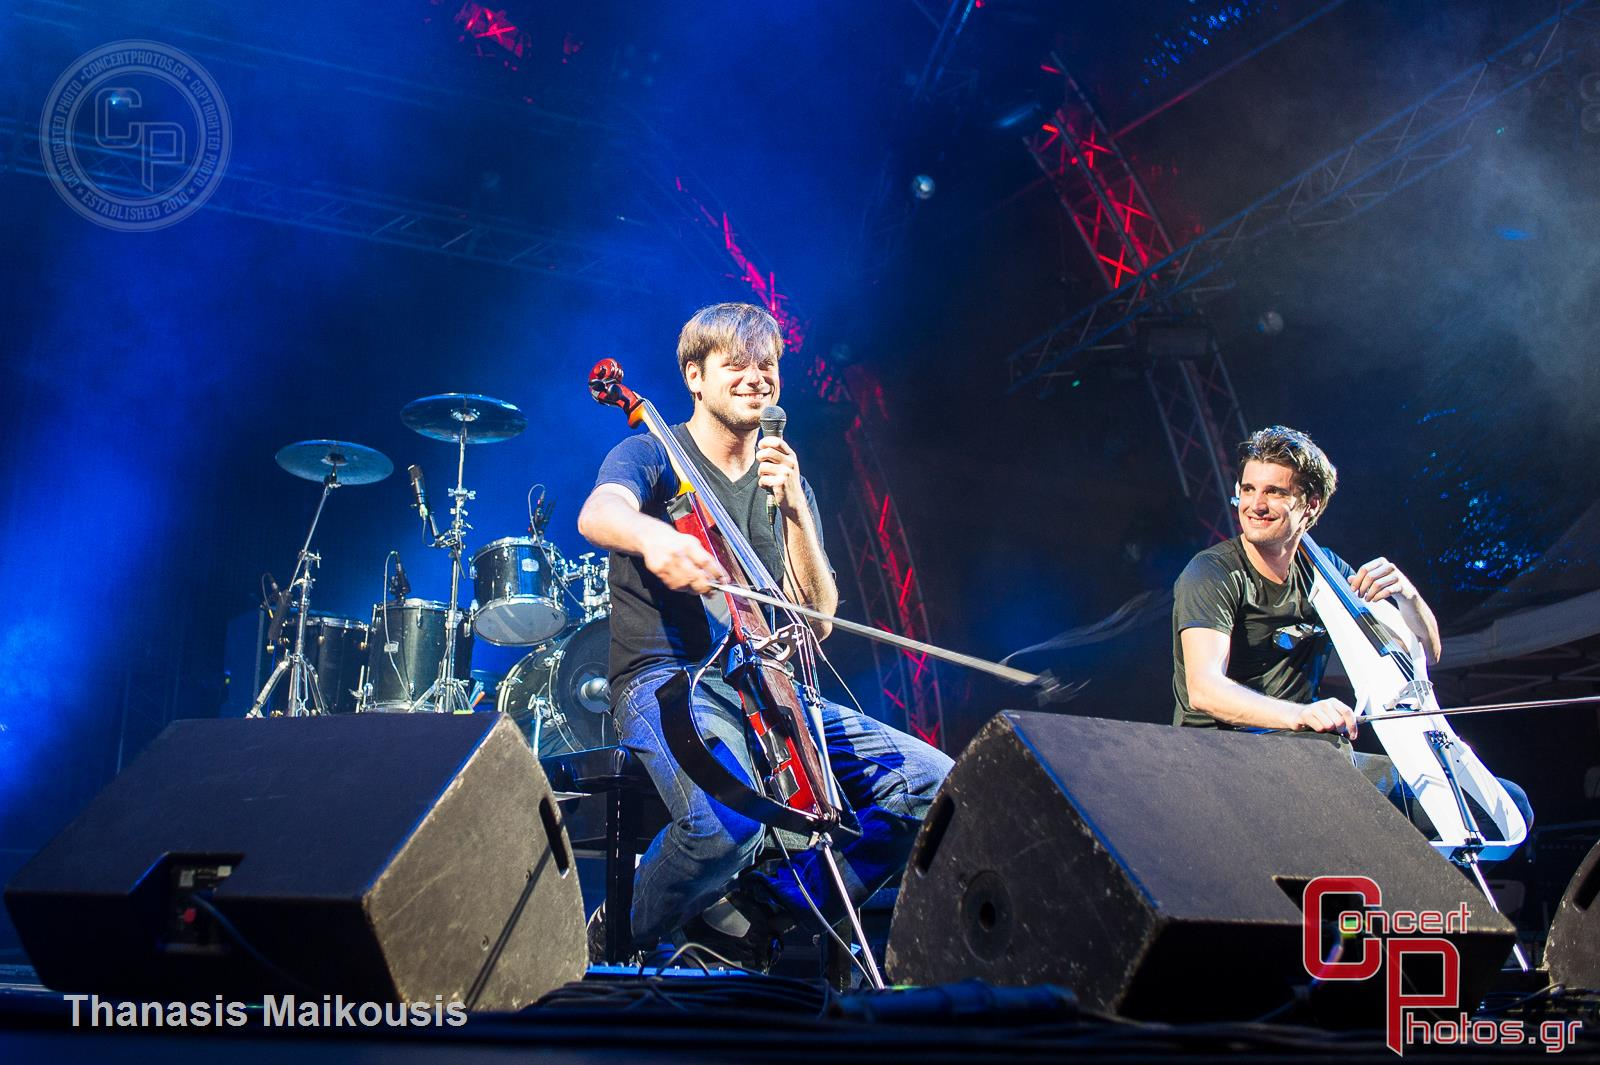 2Cellos-2Cellos Technopolis photographer: Thanasis Maikousis - untitled shoot-6229